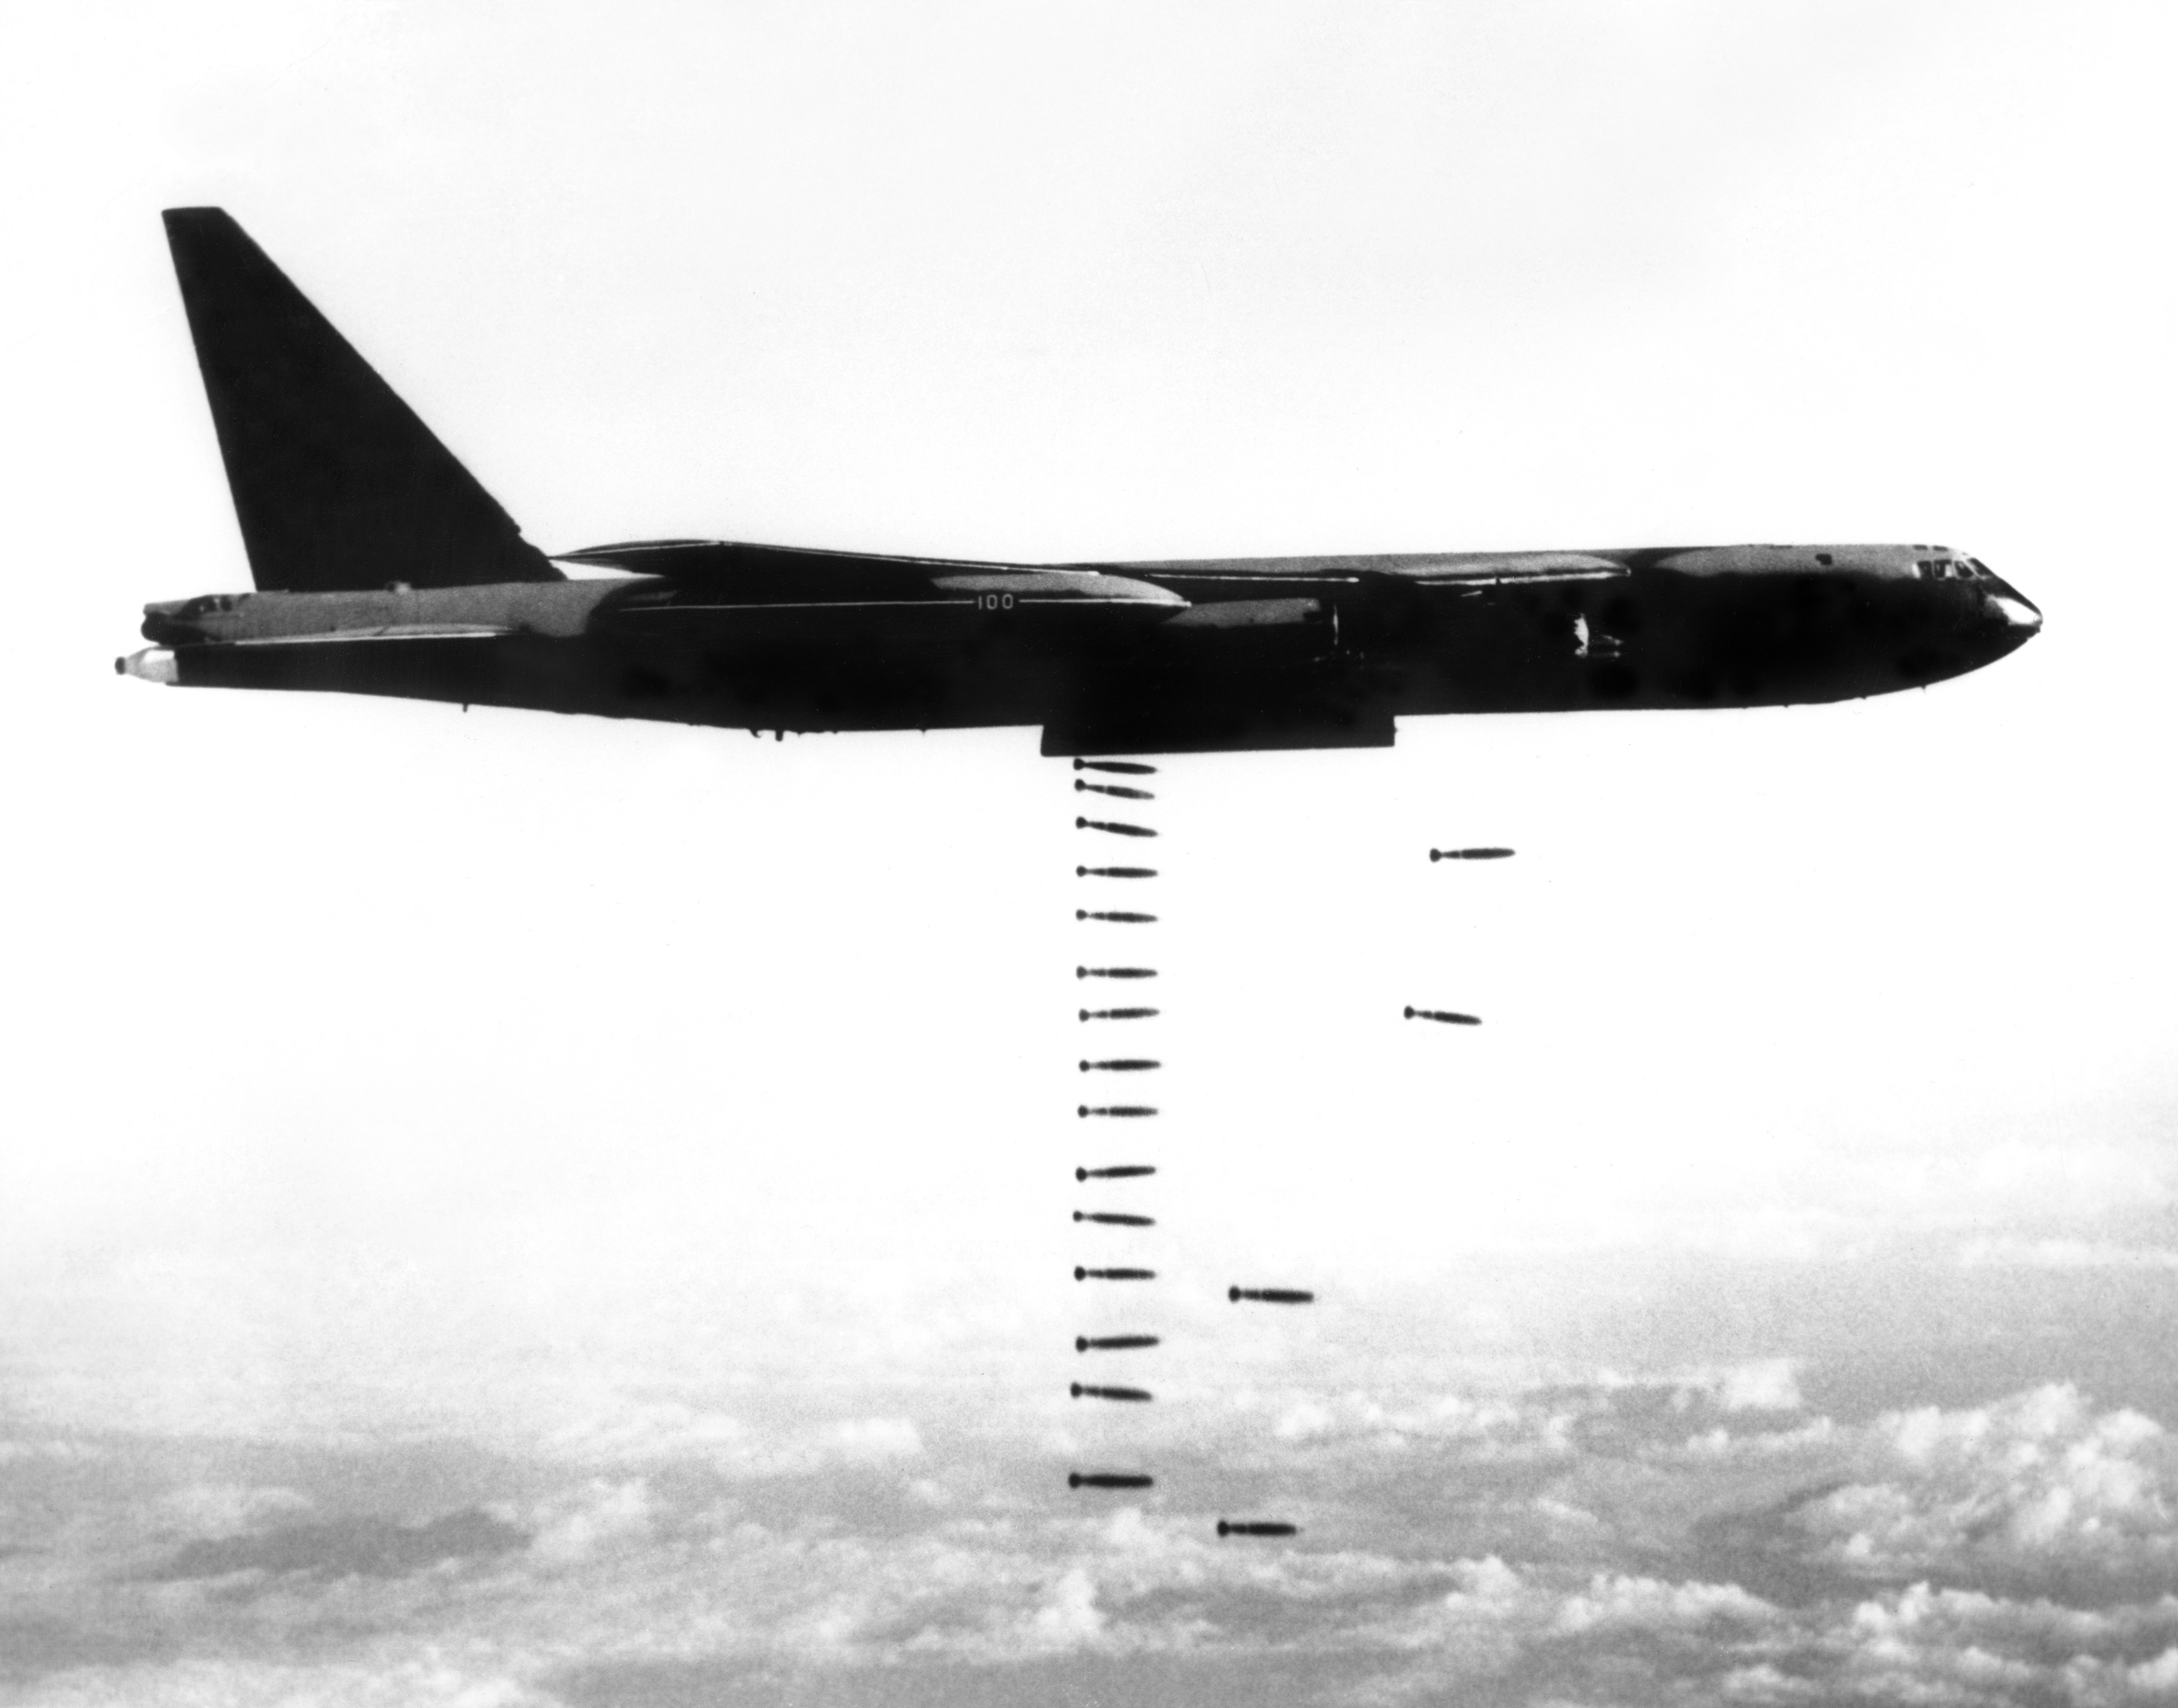 B-52 Stratofortress releasing a 'bomb train' over targets in Vietnam during the Second Indochina War, also known as the Vietnam War.